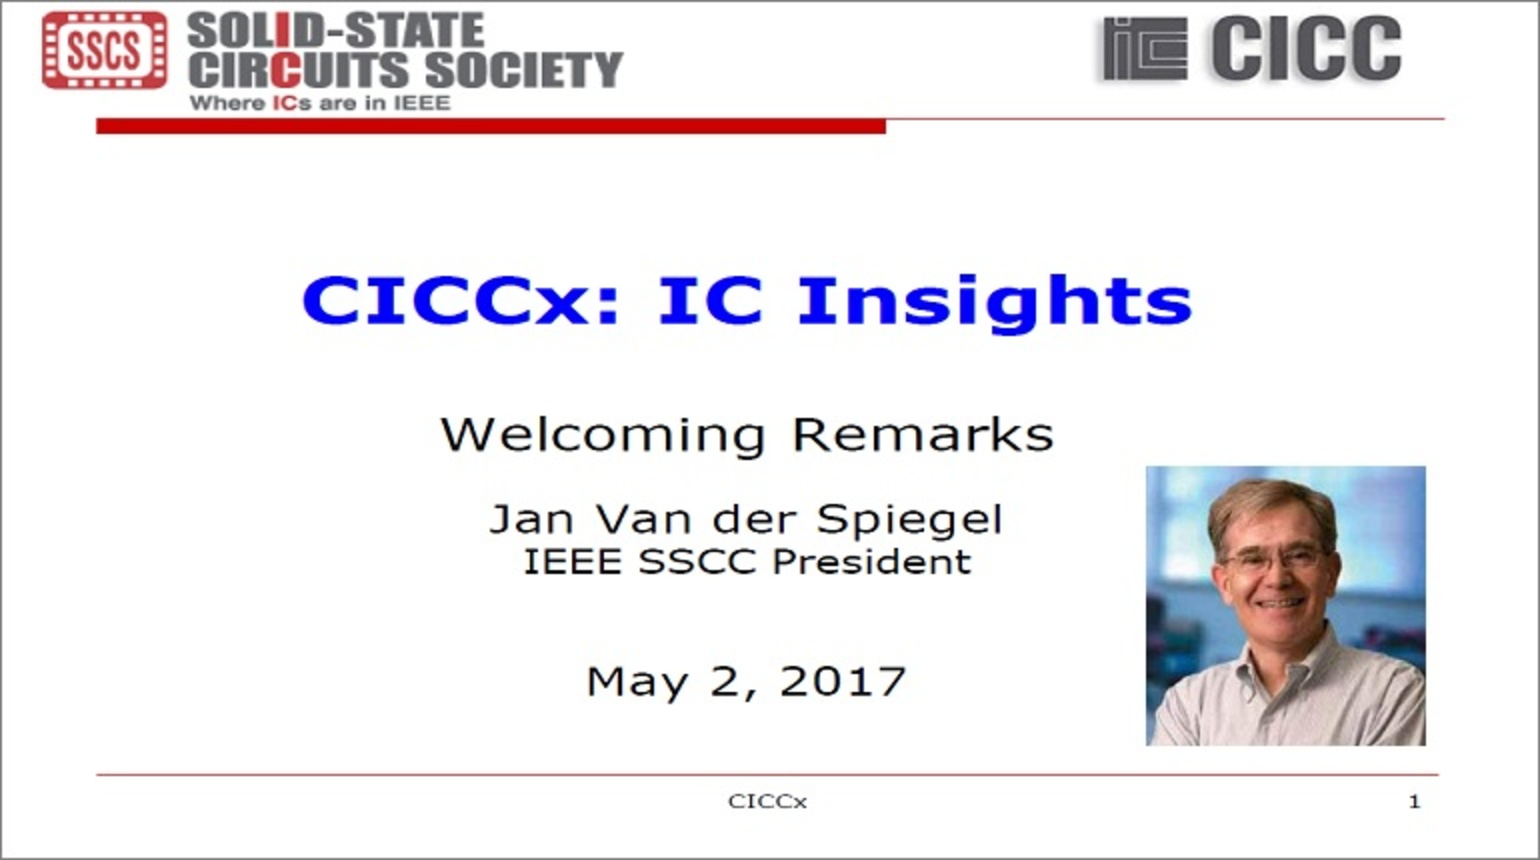 CICCx: IC Insights - Welcoming Remarks Video